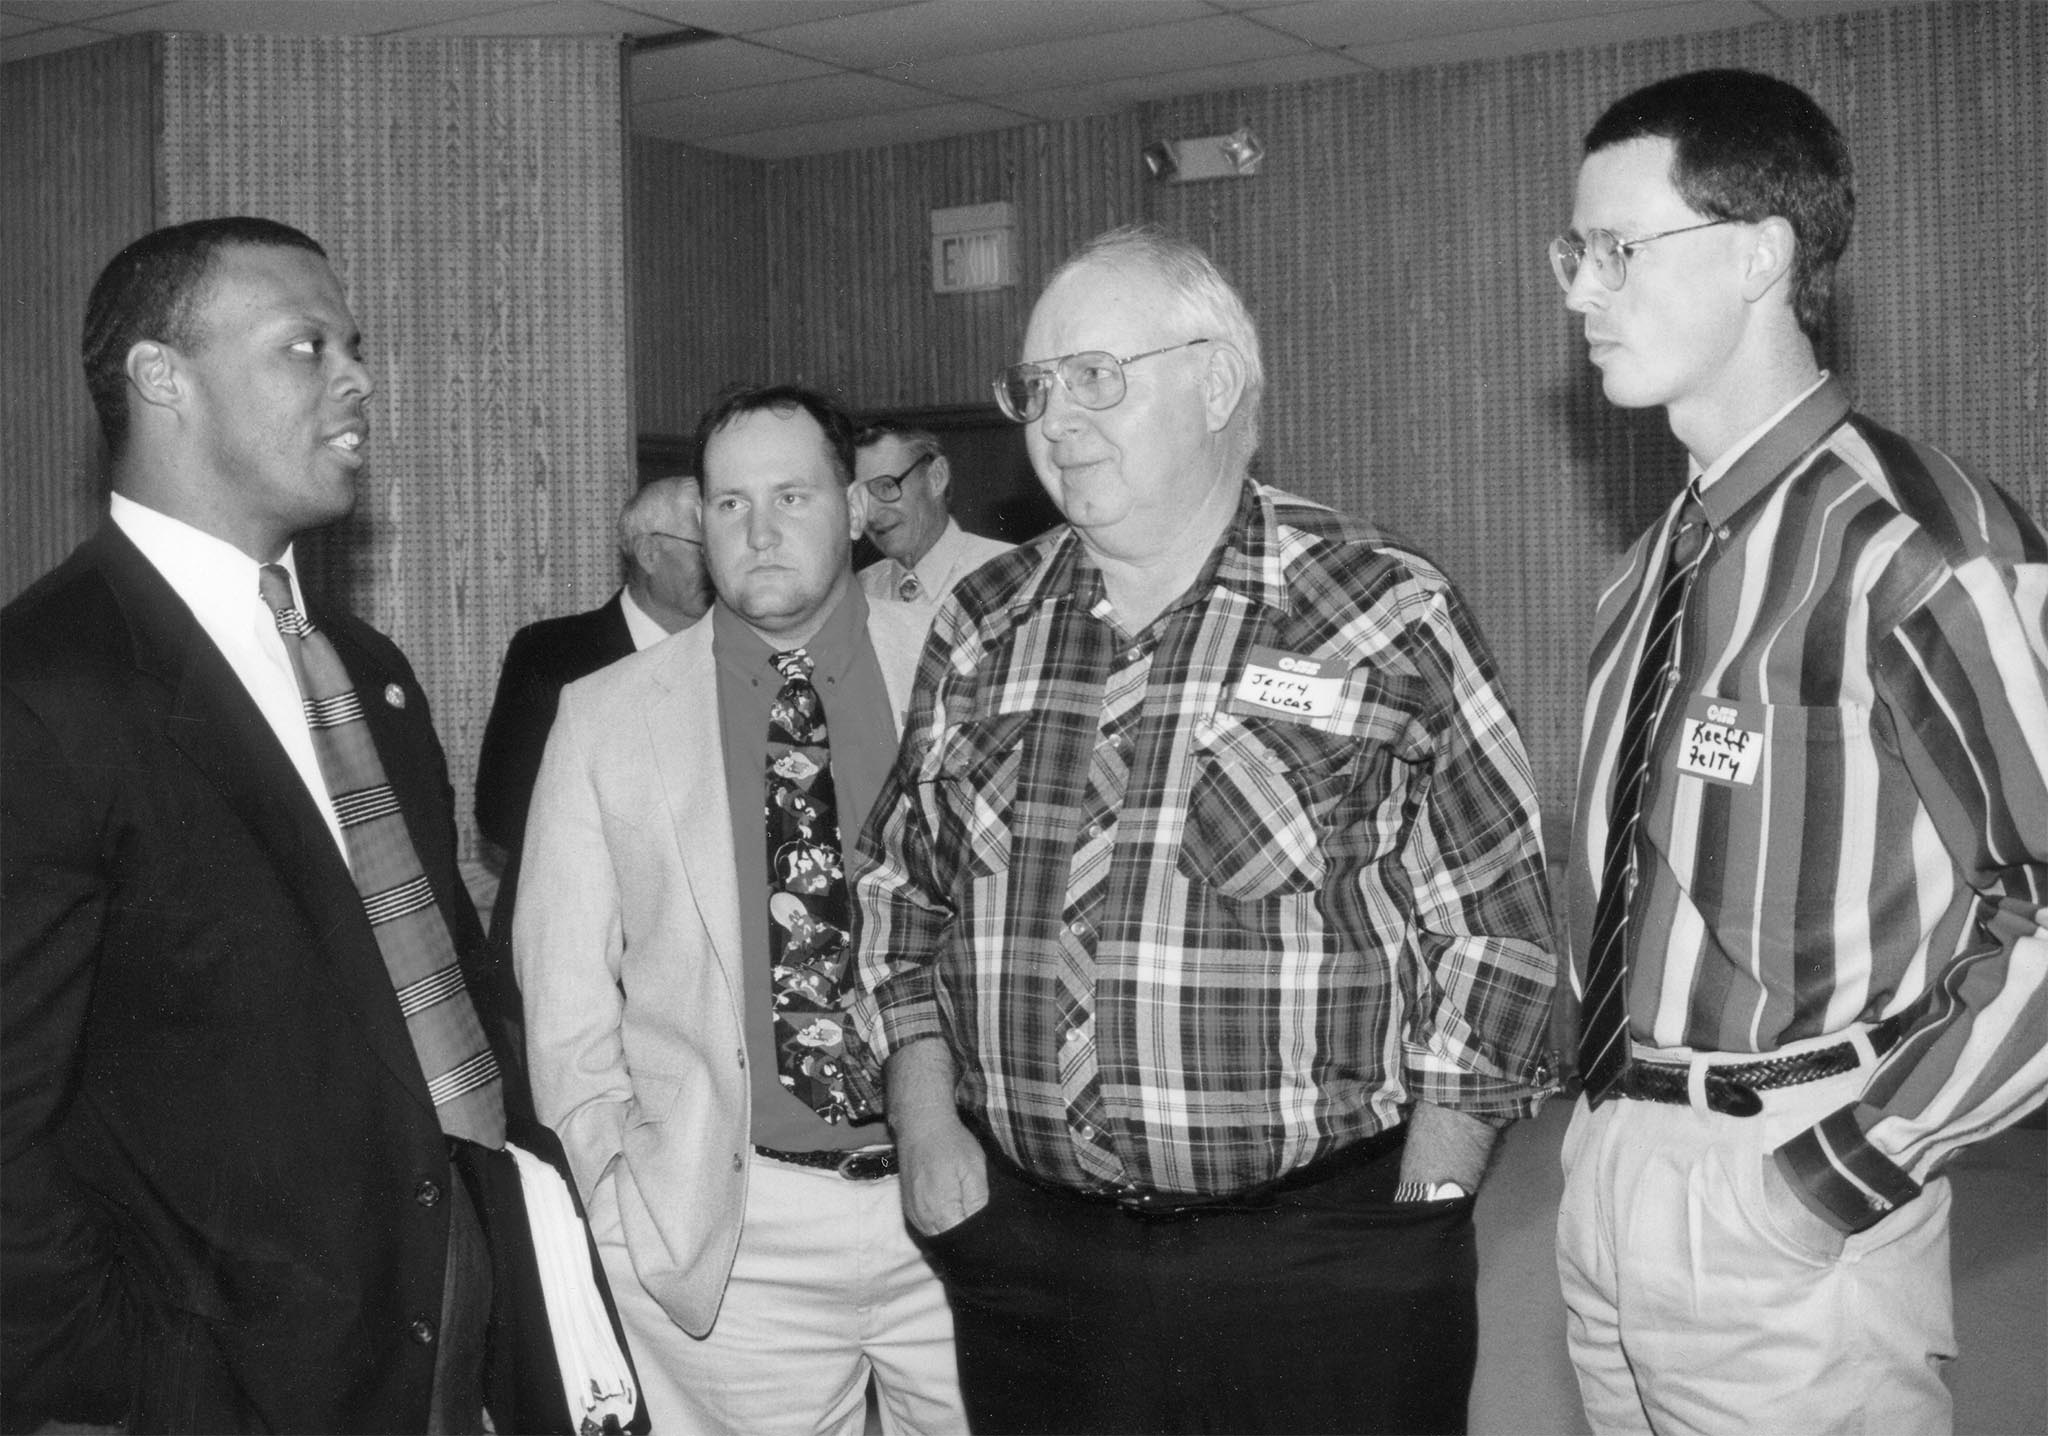 In this photo, U.S. Rep. J.C. Watts visits with Jackson County Farm Bureau members Greg Lucas and Jerry Lucas during the eight-county legislative banquet held in Lawton in 1996. Watts spoke to more than 100 Farm Bureau members, addressing family values, high taxes, the increasing national debt and other issues.